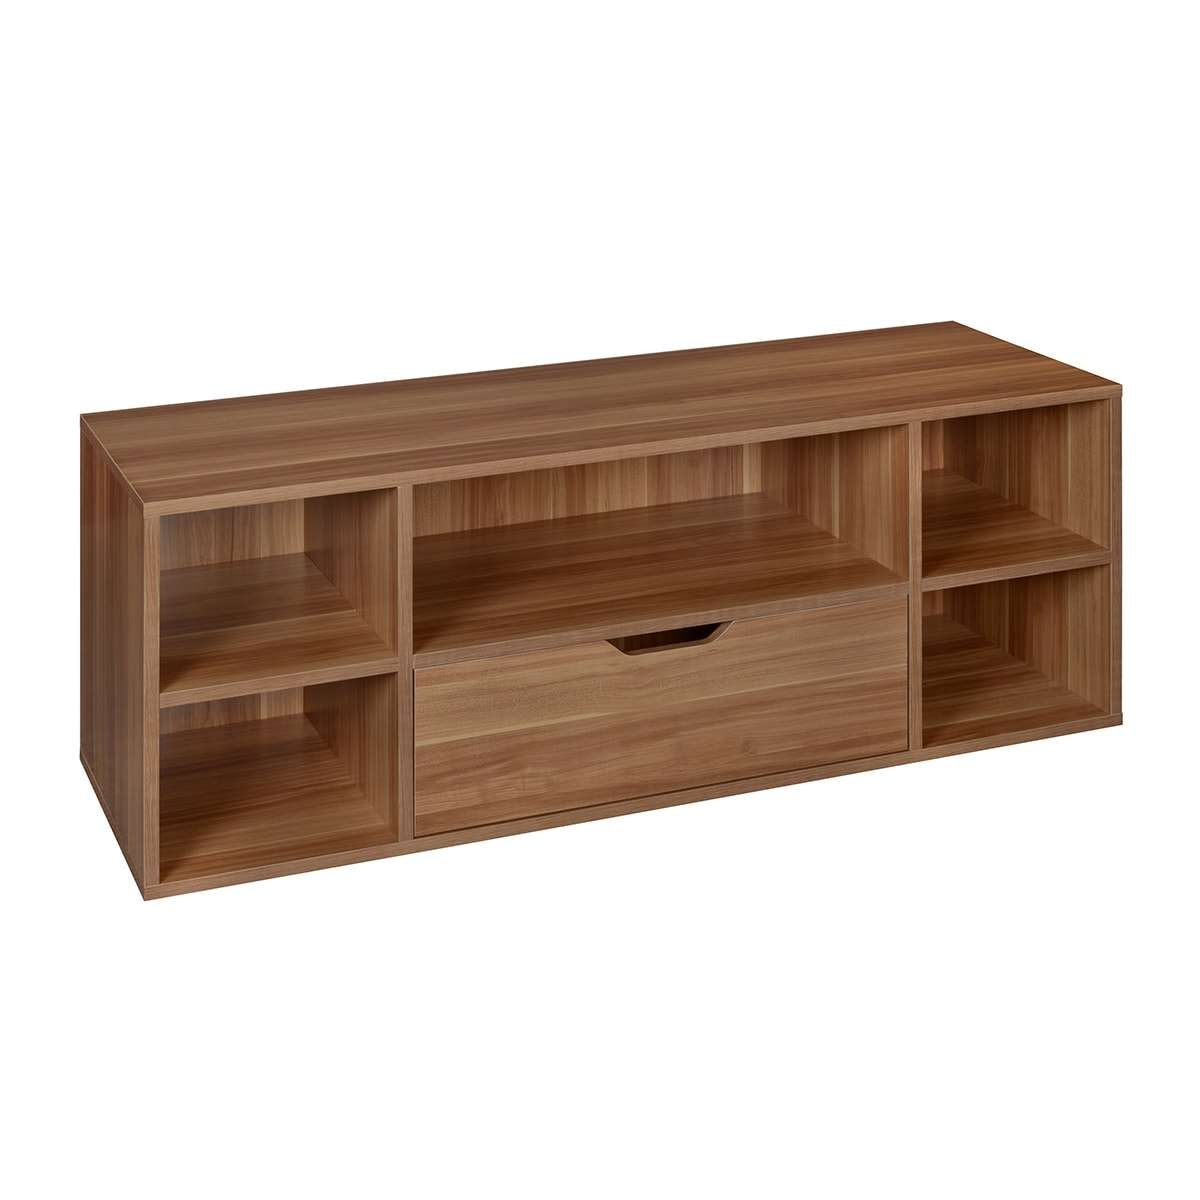 Niche Mod Wood Tv Stand – Free Shipping Today – Overstock In Hard Wood Tv Stands (View 9 of 15)